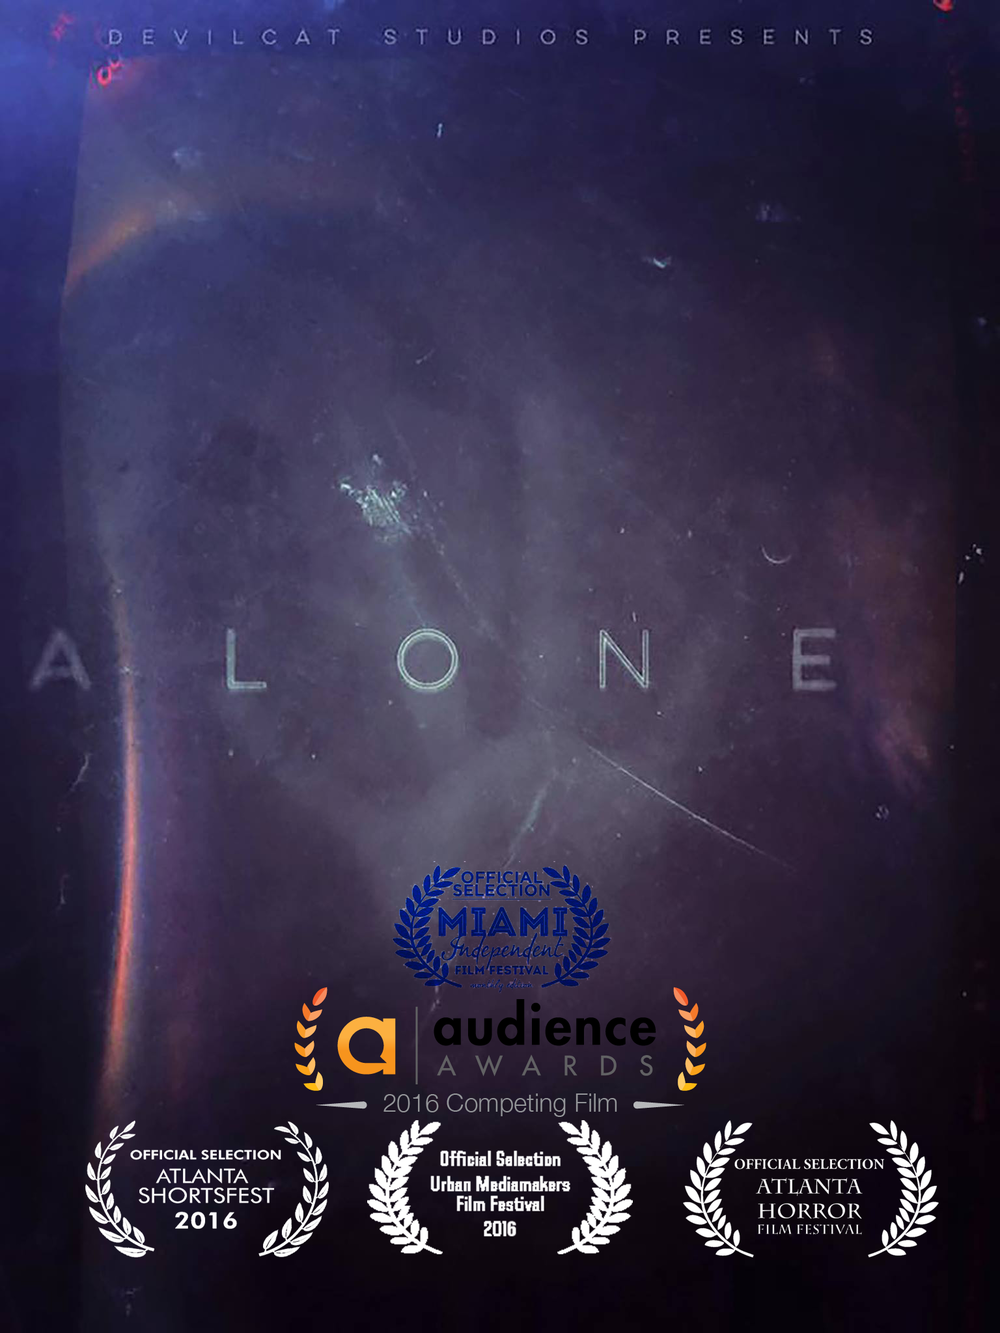 ALONE (2016) - A studio manager finds herself working a double shift alone...or so she thinks.Starring: Kathryn Telford, Scott Moore  Written By: Steven Ceballos  Directed By: Sylvester Alfonso